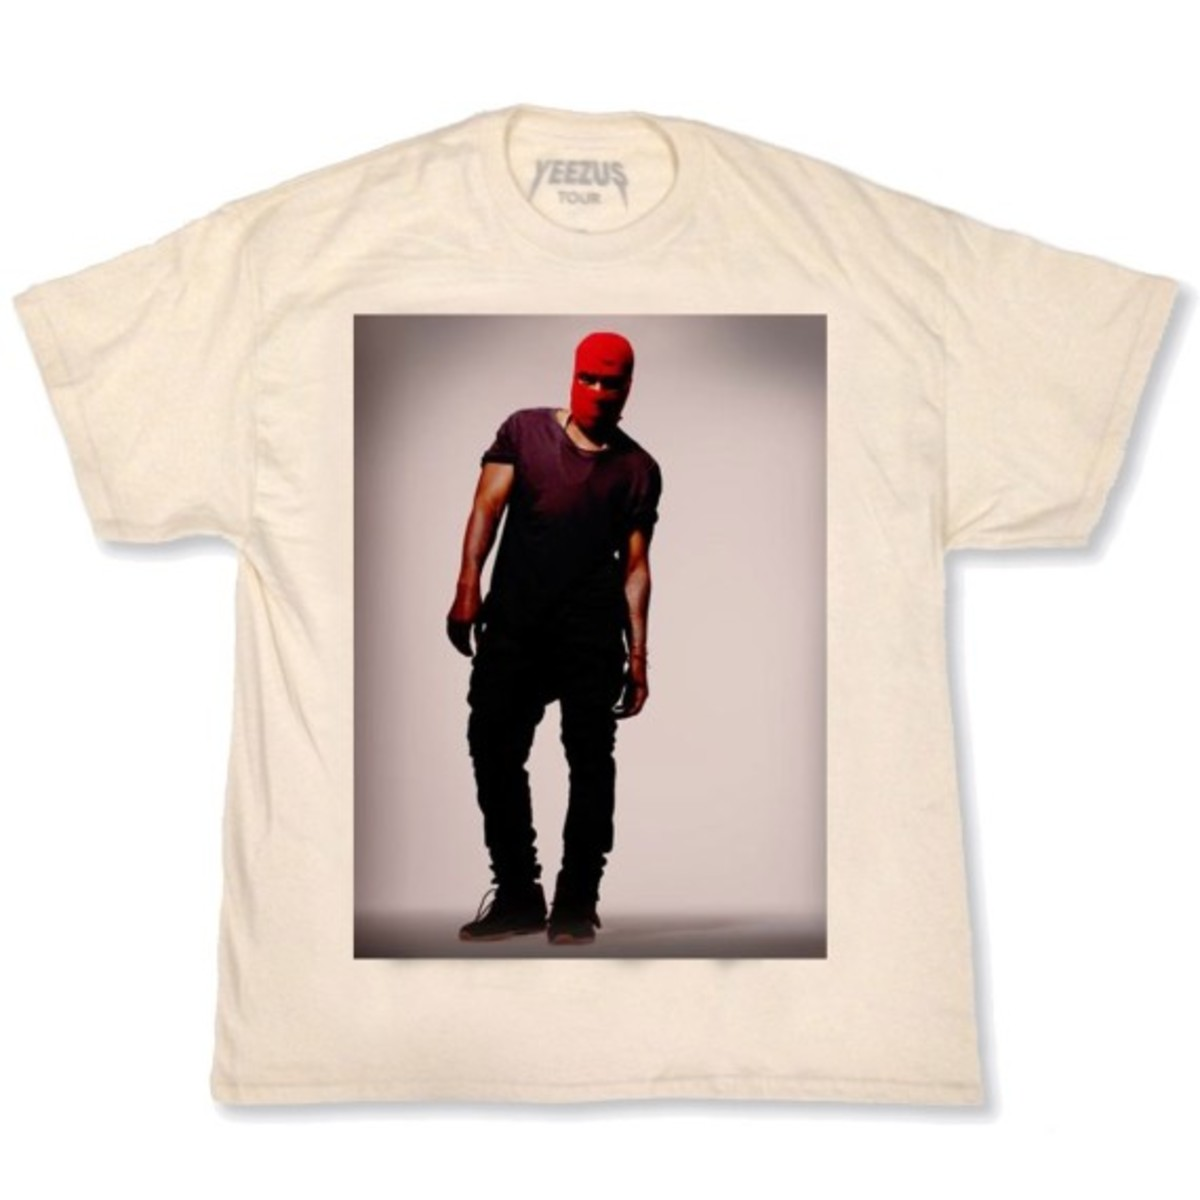 """Kanye West - """"Yeezus Tour"""" Merchandise   Available Online - 9"""